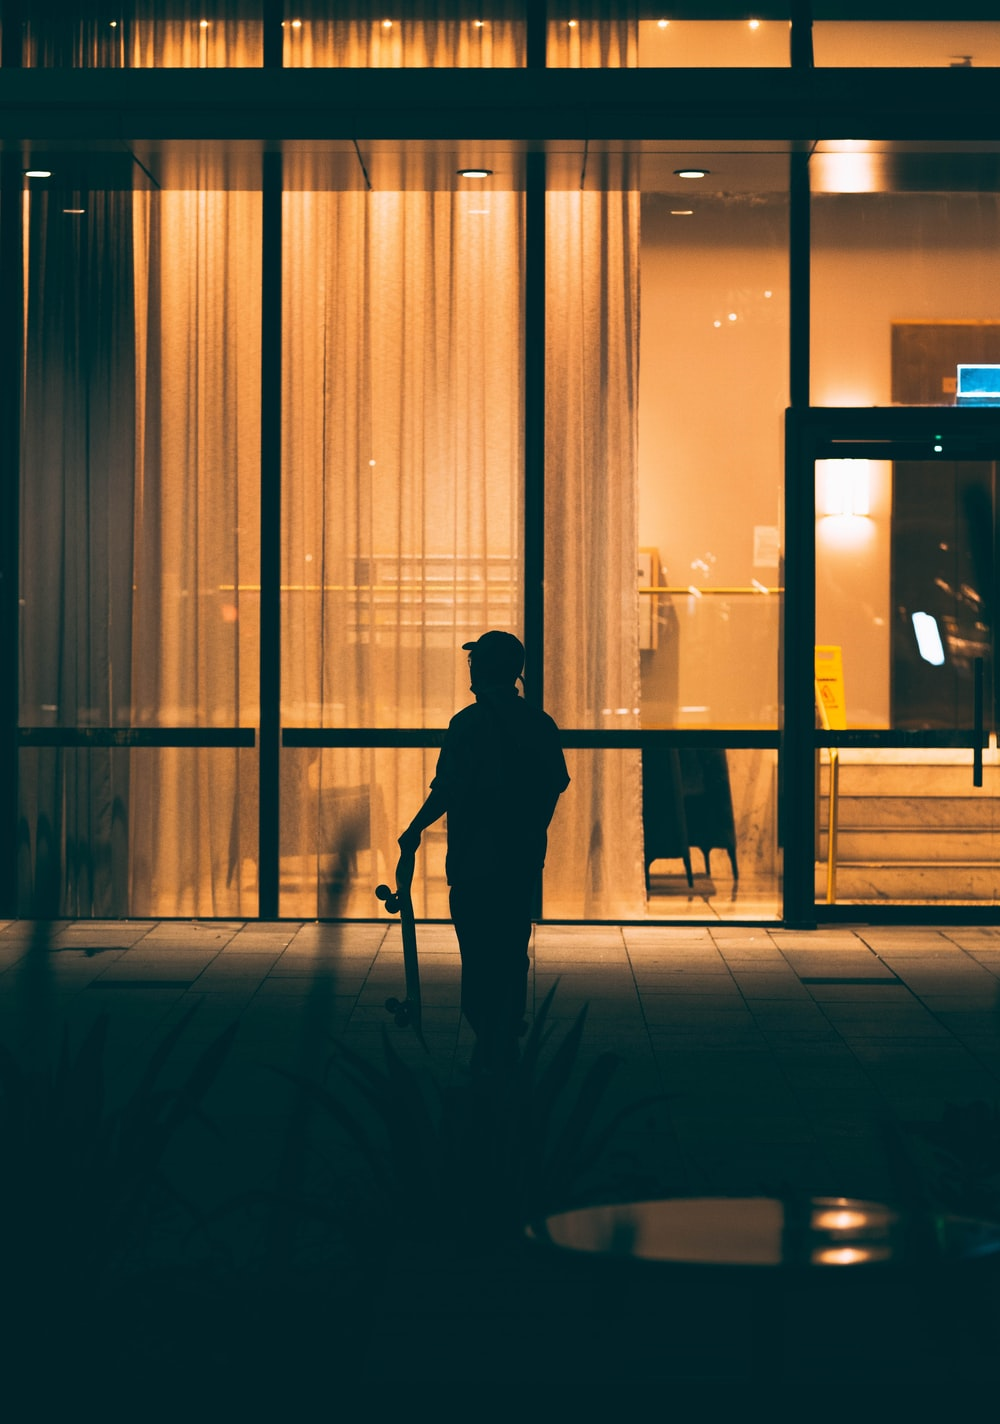 silhouette of man standing in front of glass window